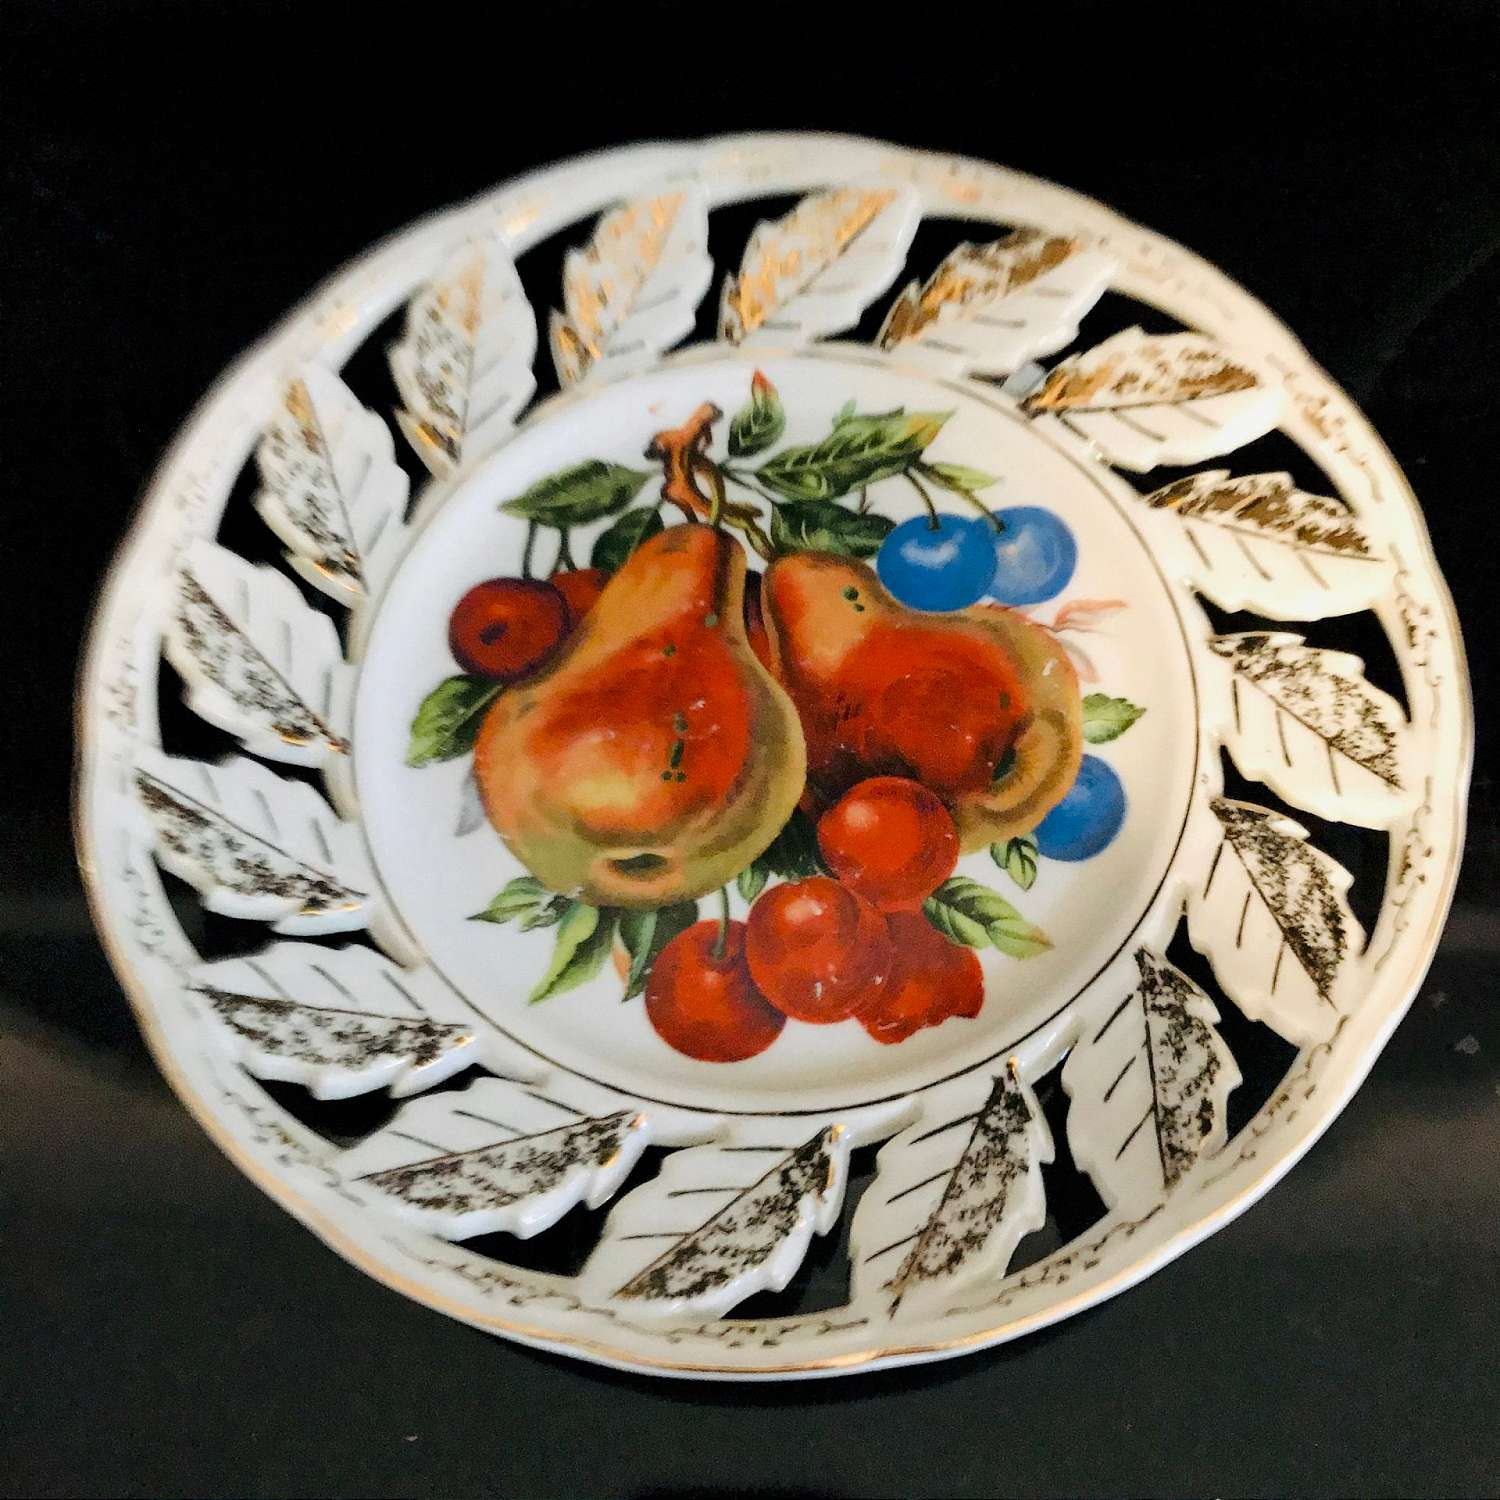 Vintage Plate Reticulated Edge Bright Colored Fruit Pattern Gold Trimmed Leaves Edge Farmhouse Wall Decor Display Cottage Kitchen Carol S True Vintage And Antiques